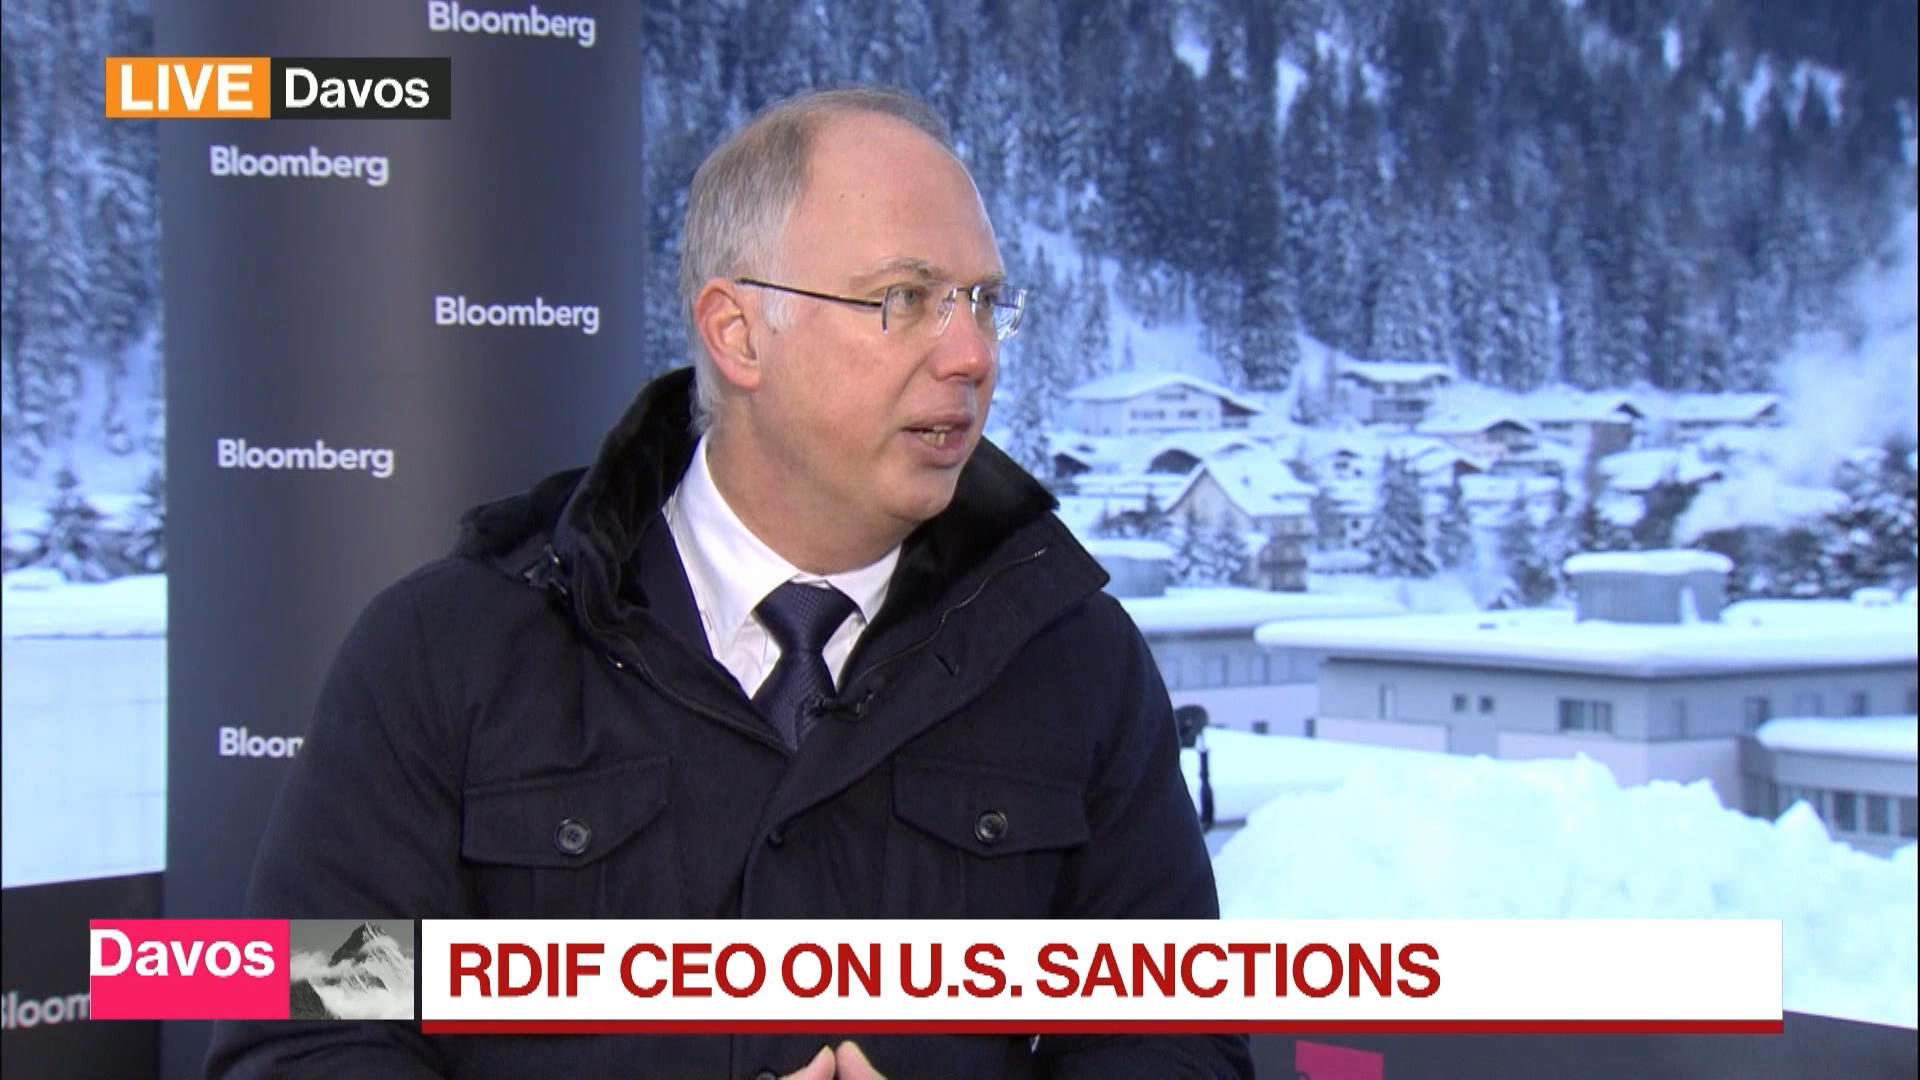 Russian Sanctions Undermines Long-Term Strength of U.S., Says RDIF's CEO